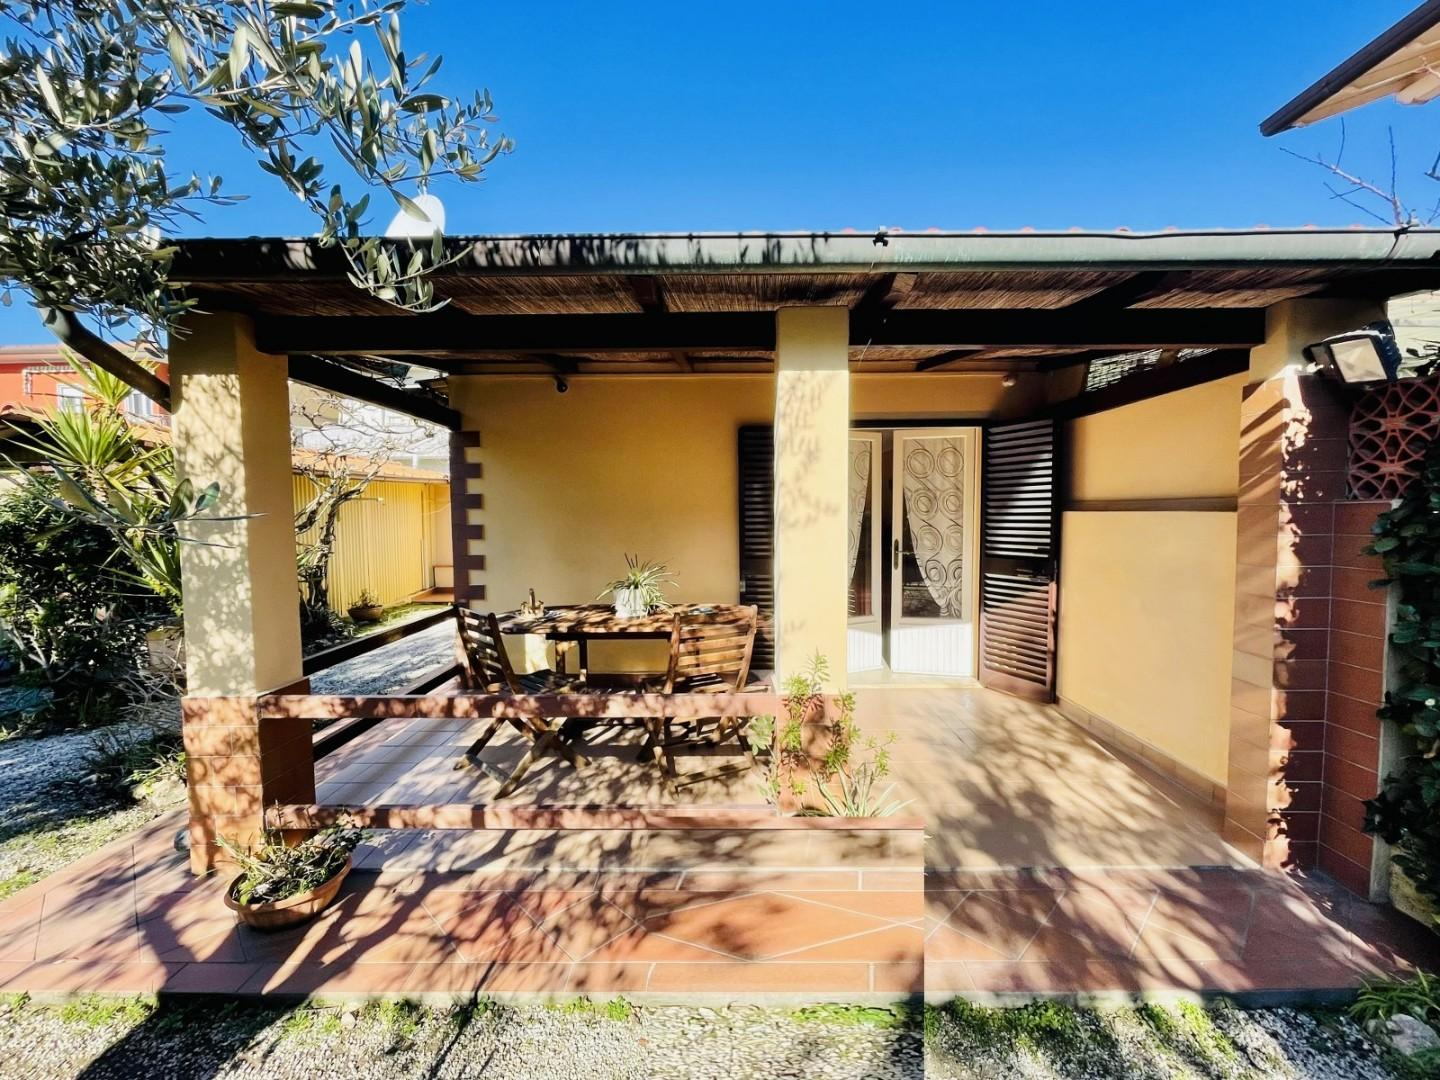 Single-family house for sale in Pietrasanta (LU)